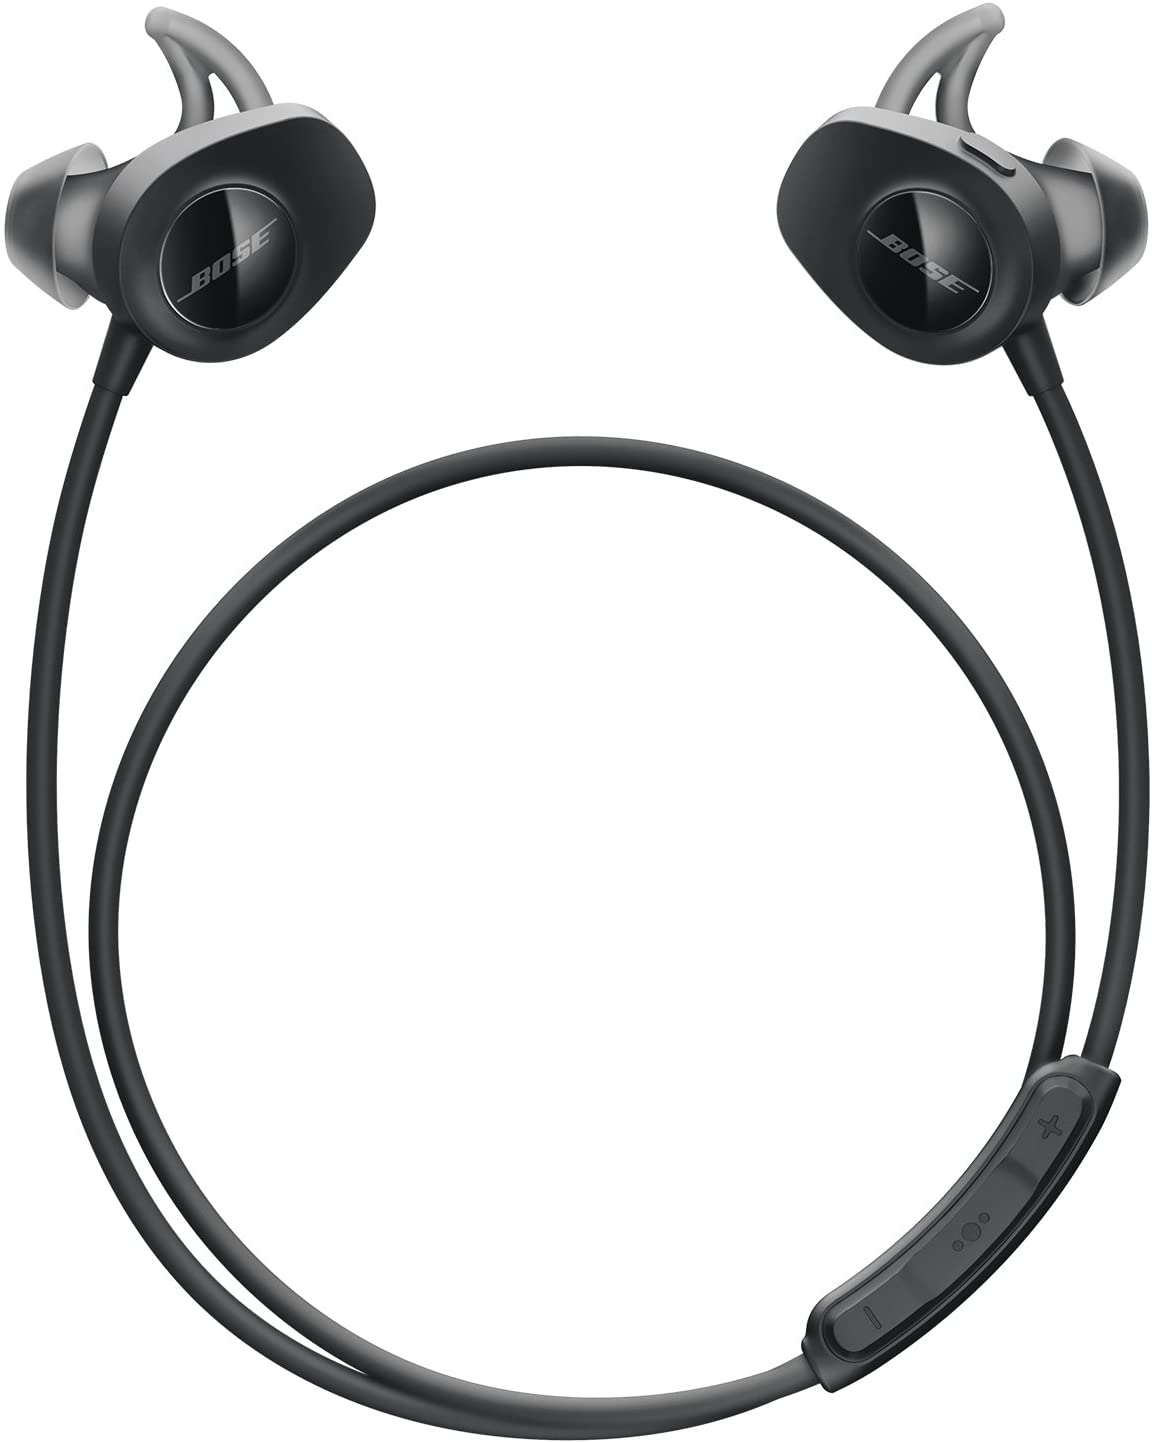 Bose SoundSport, Wireless Earbuds,